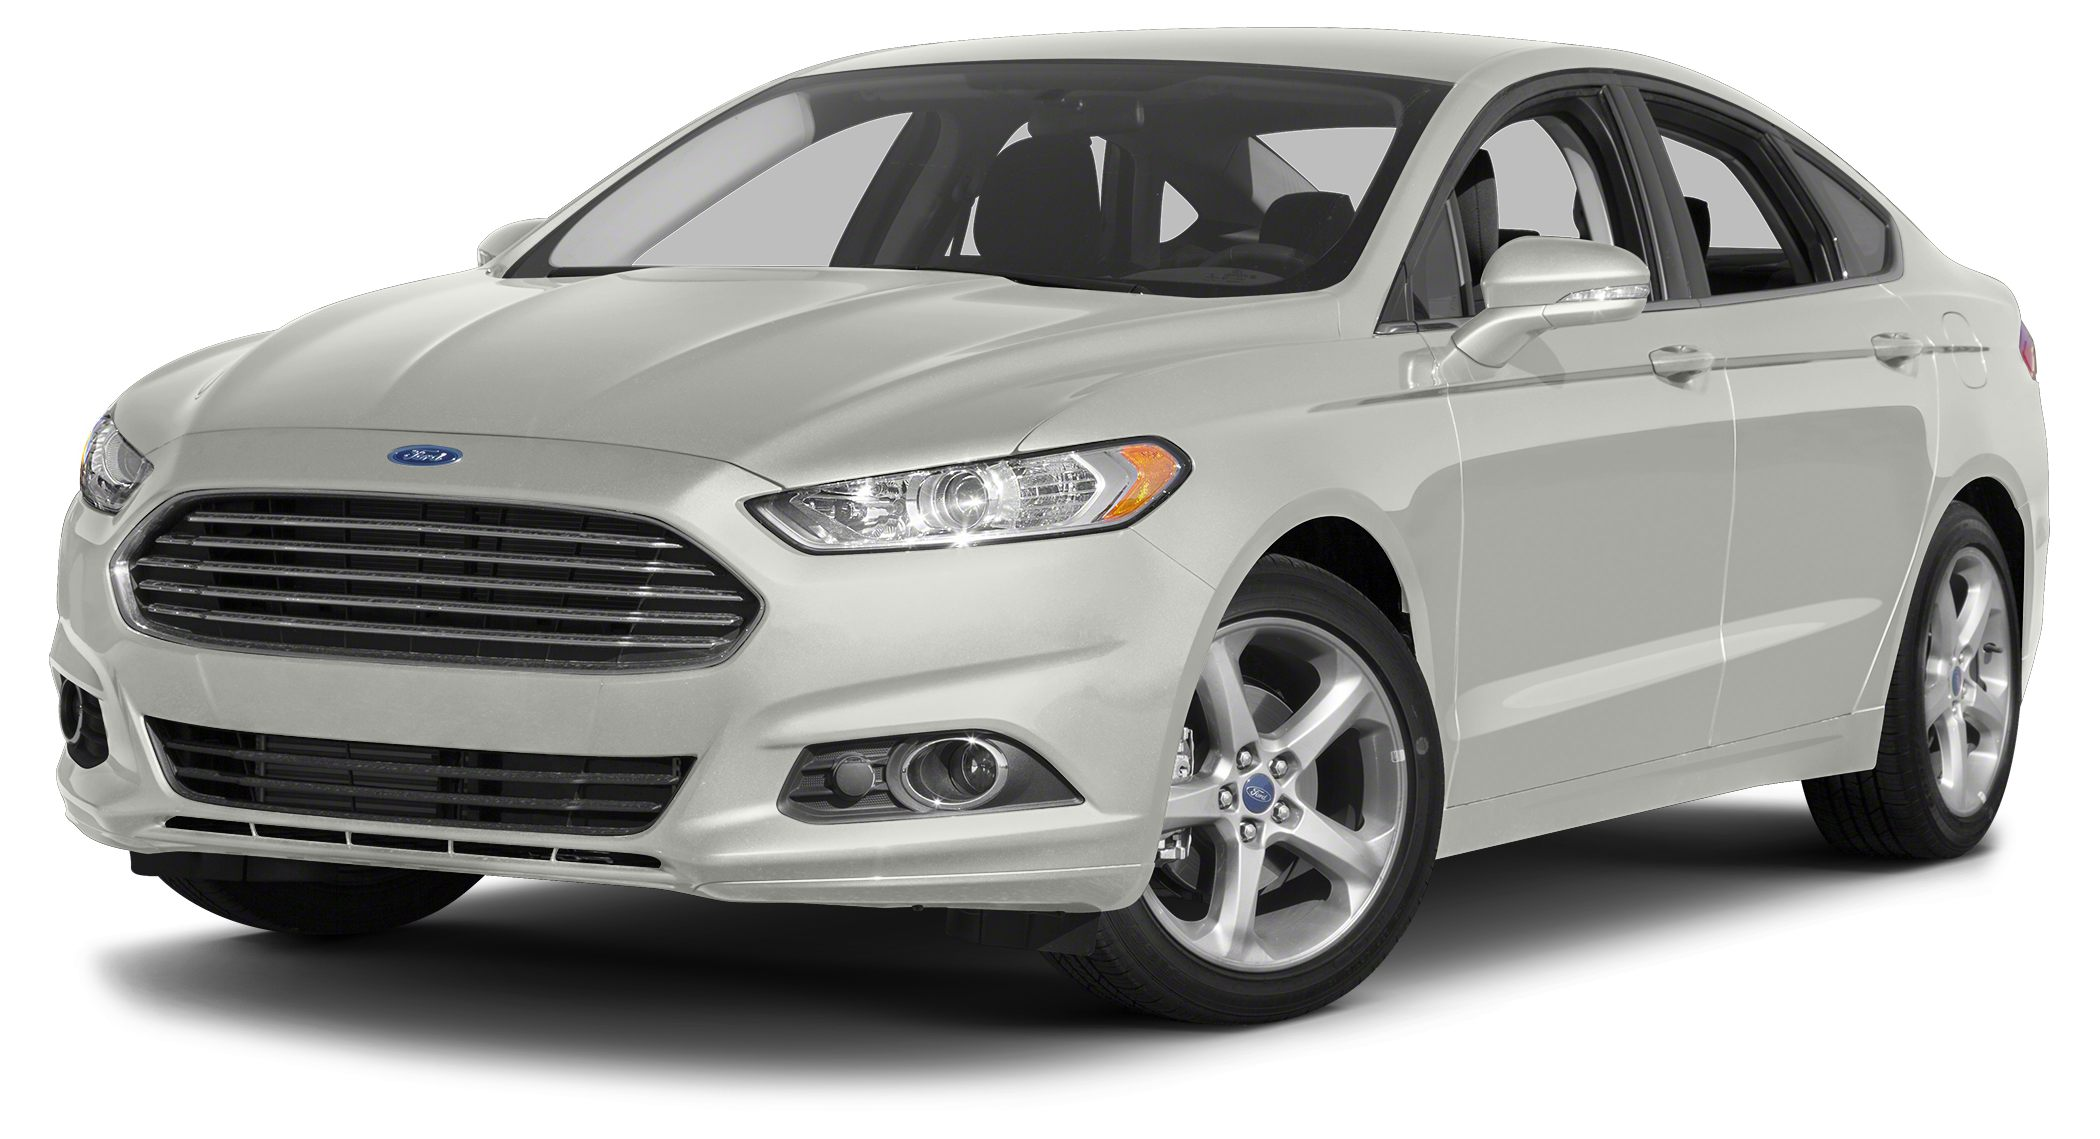 2015 Ford Fusion SE The 2015 Ford Fusion has the upscale style and front grille that resemble high